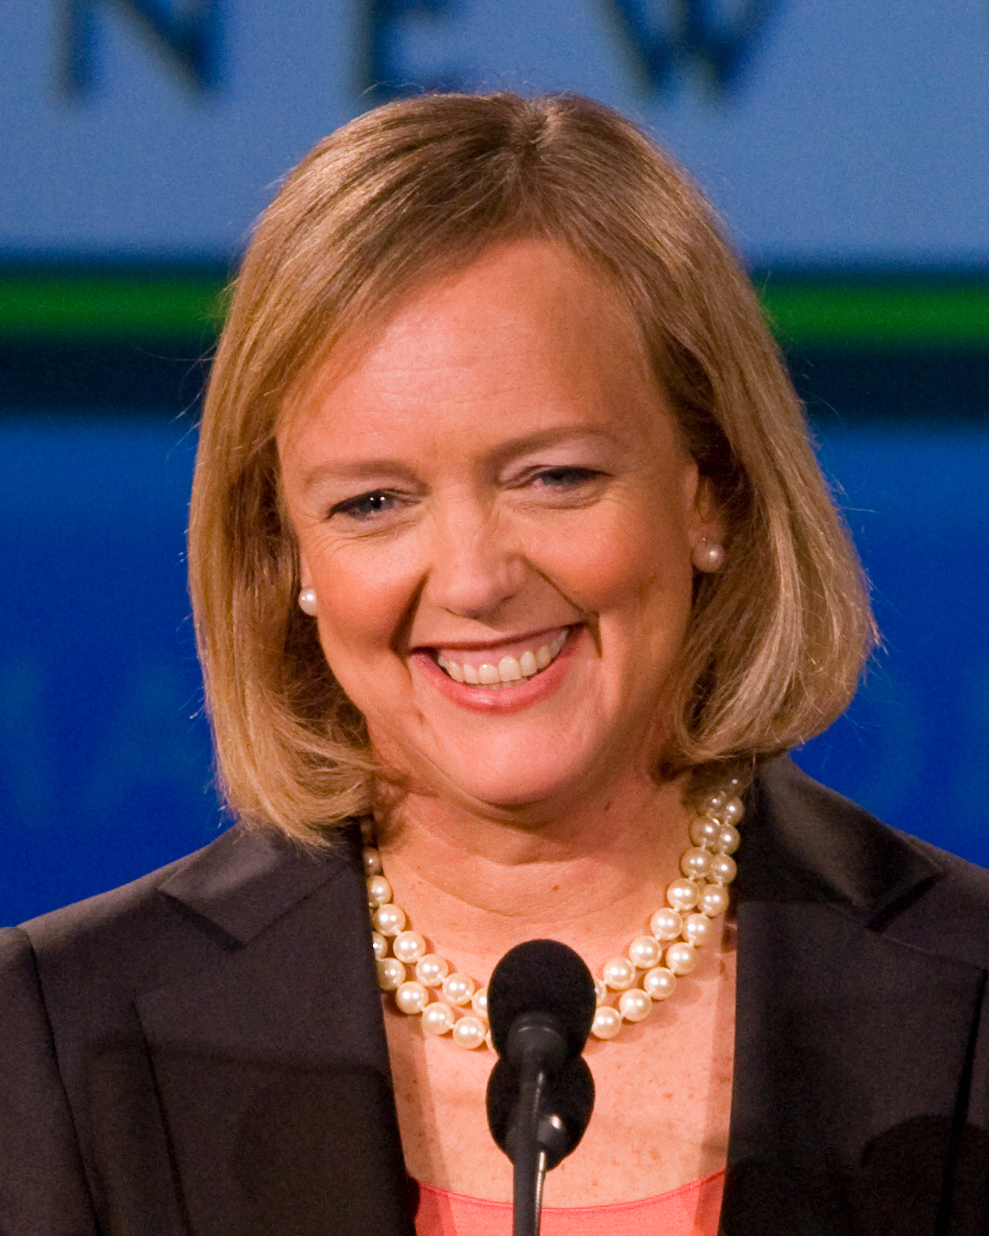 Meg Whitman to step down as HPE chief executive